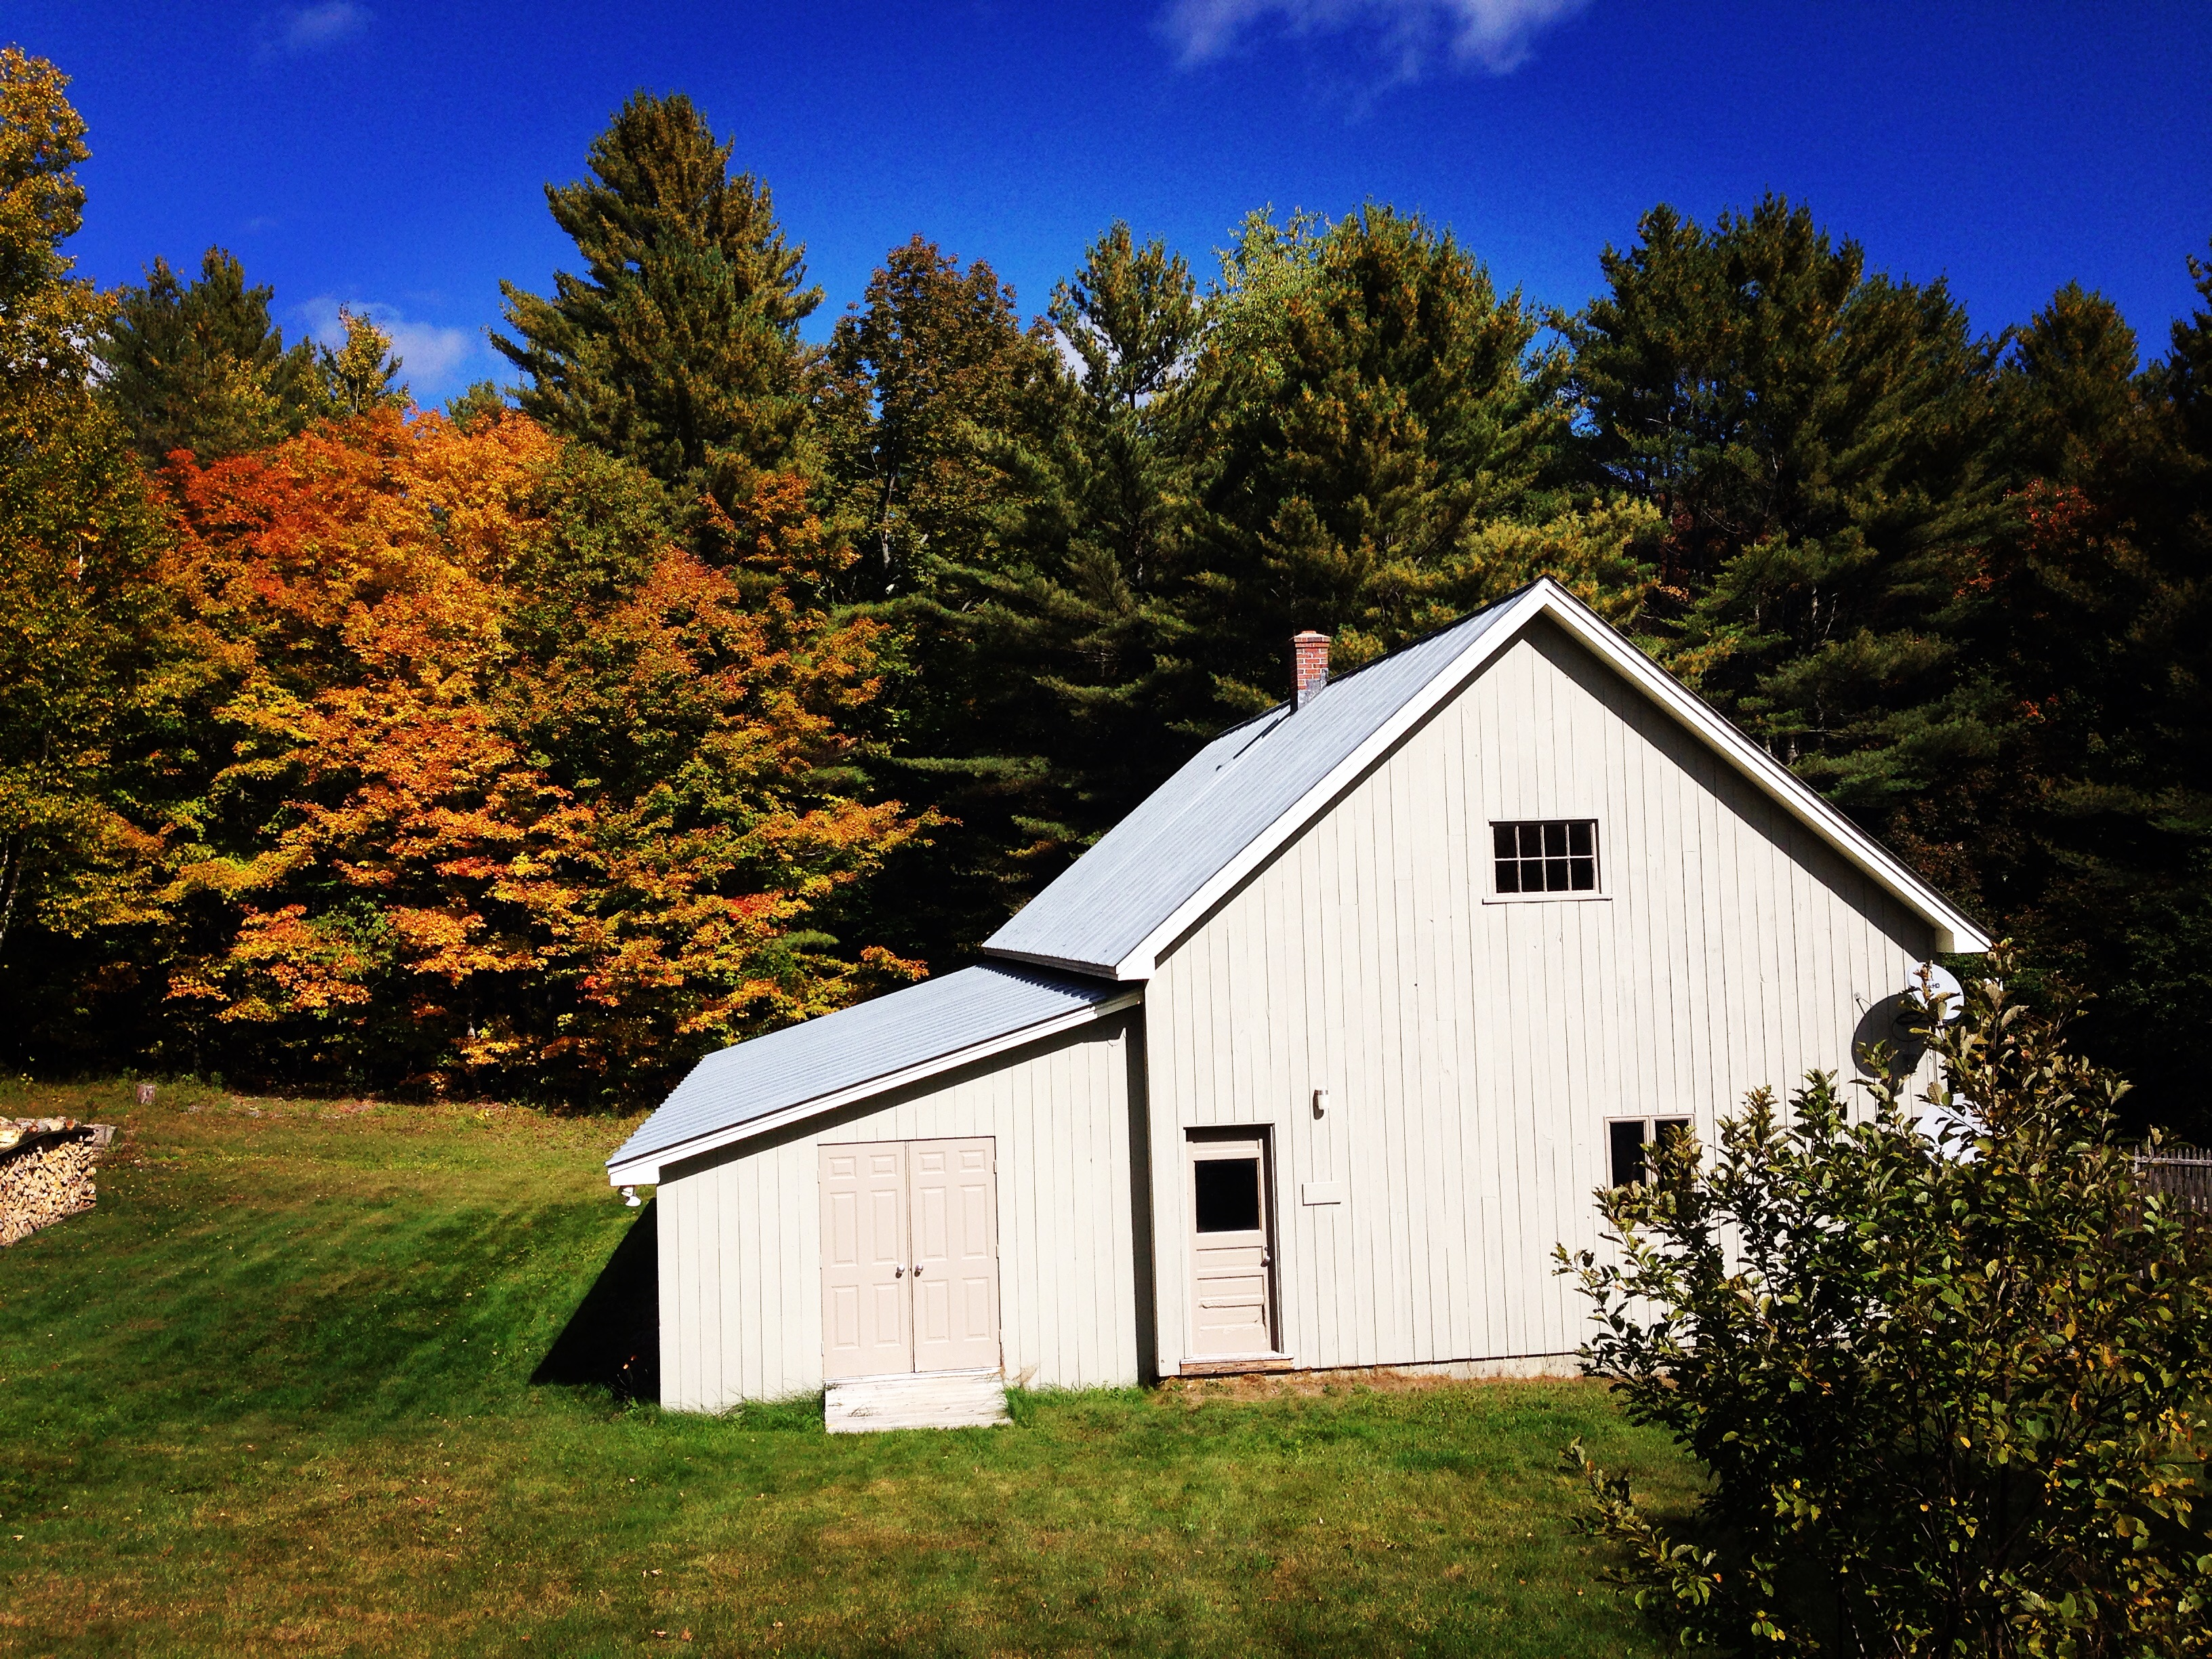 Autumn barn!